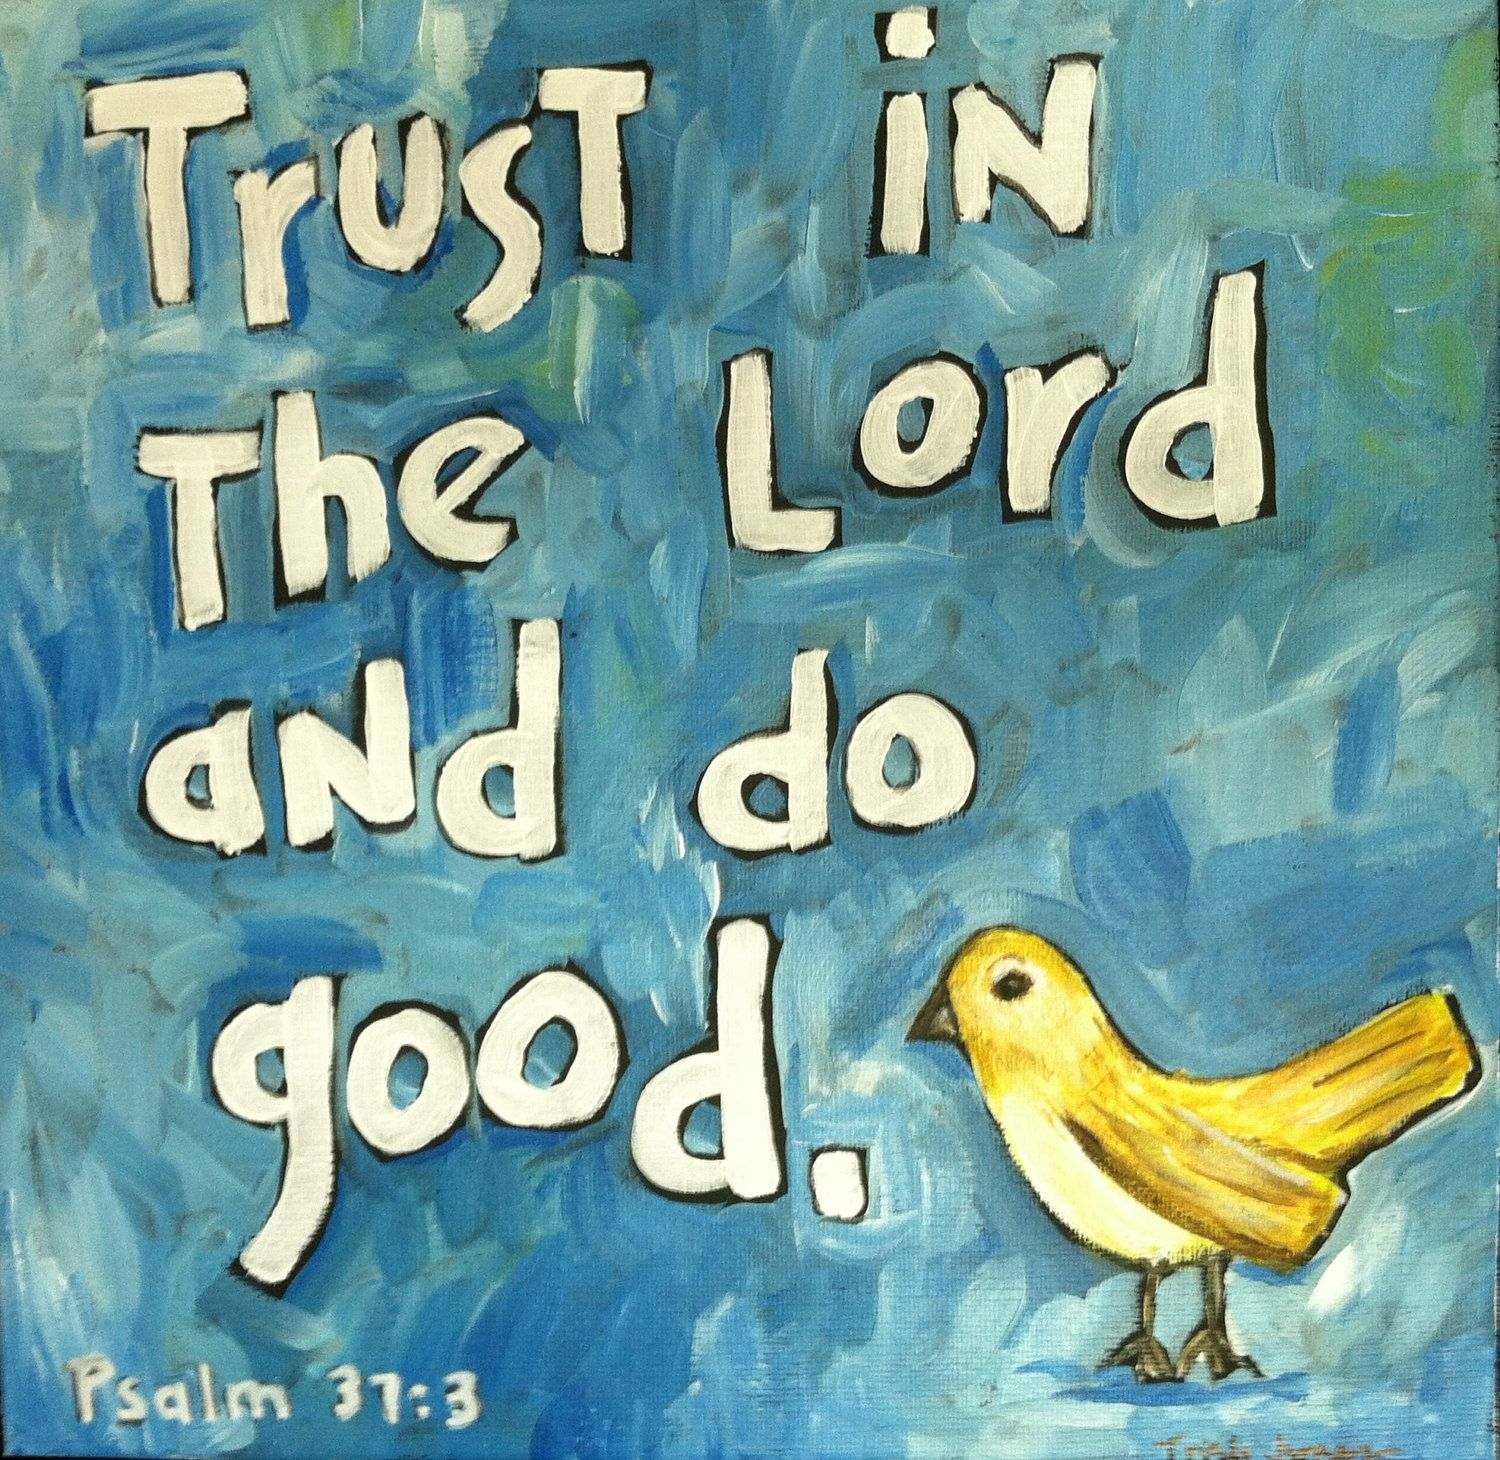 Trusting In The Lord Quotes: Trust In The Lord Scripture Art Painting Of Bible Verse